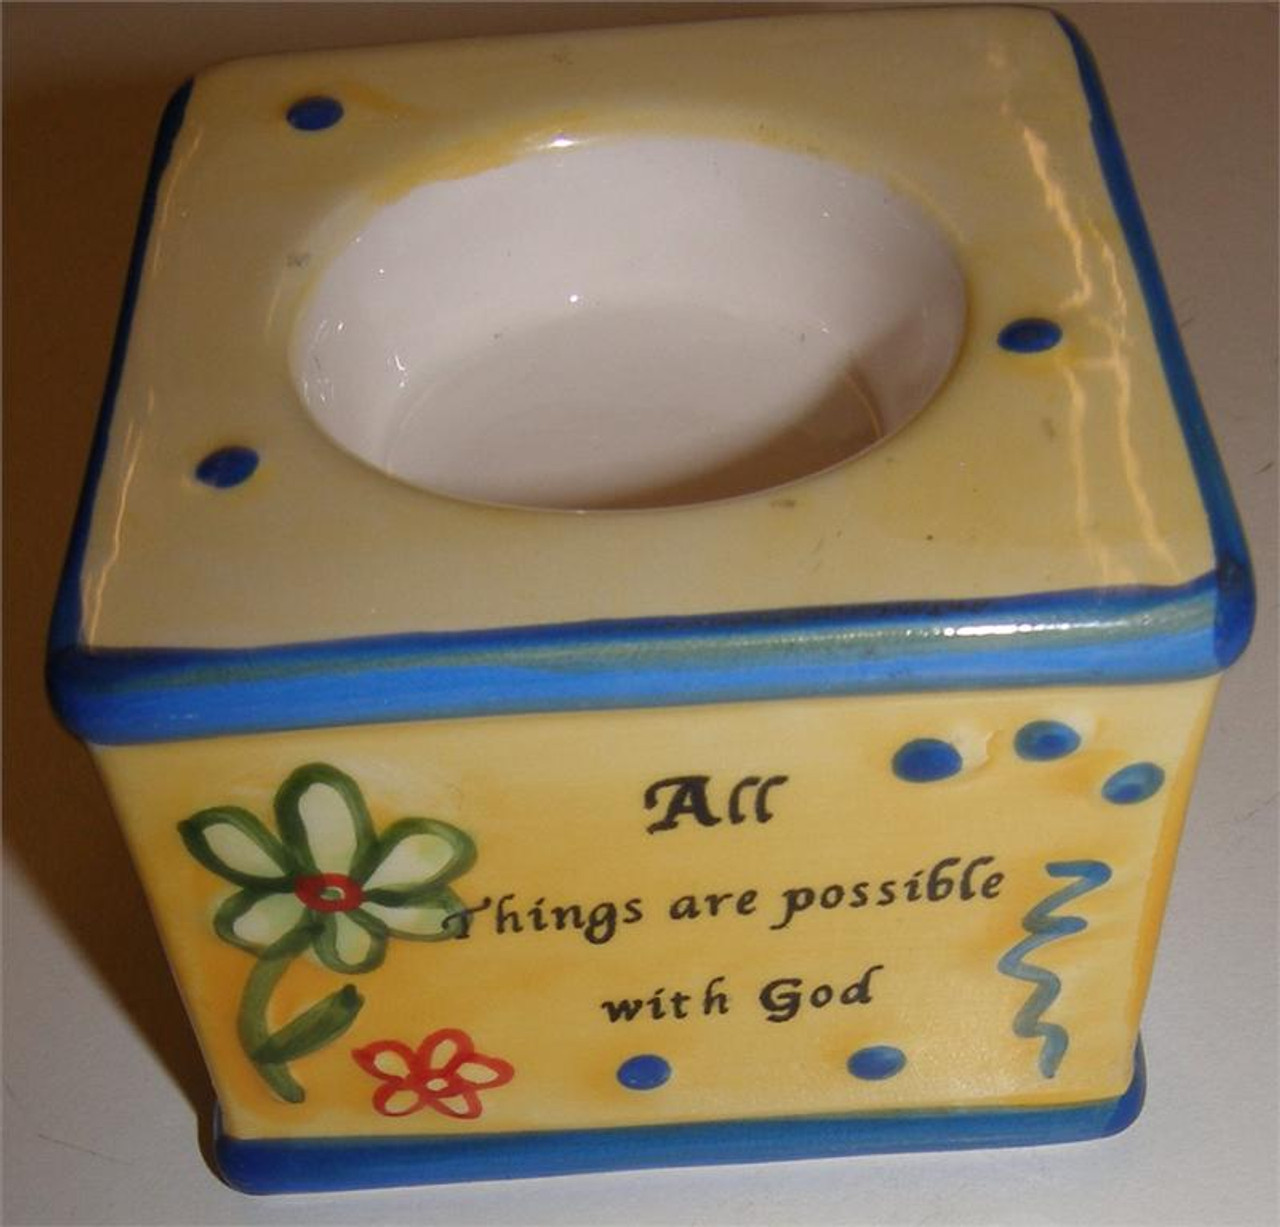 All Things Are Possible With God Candle Holder